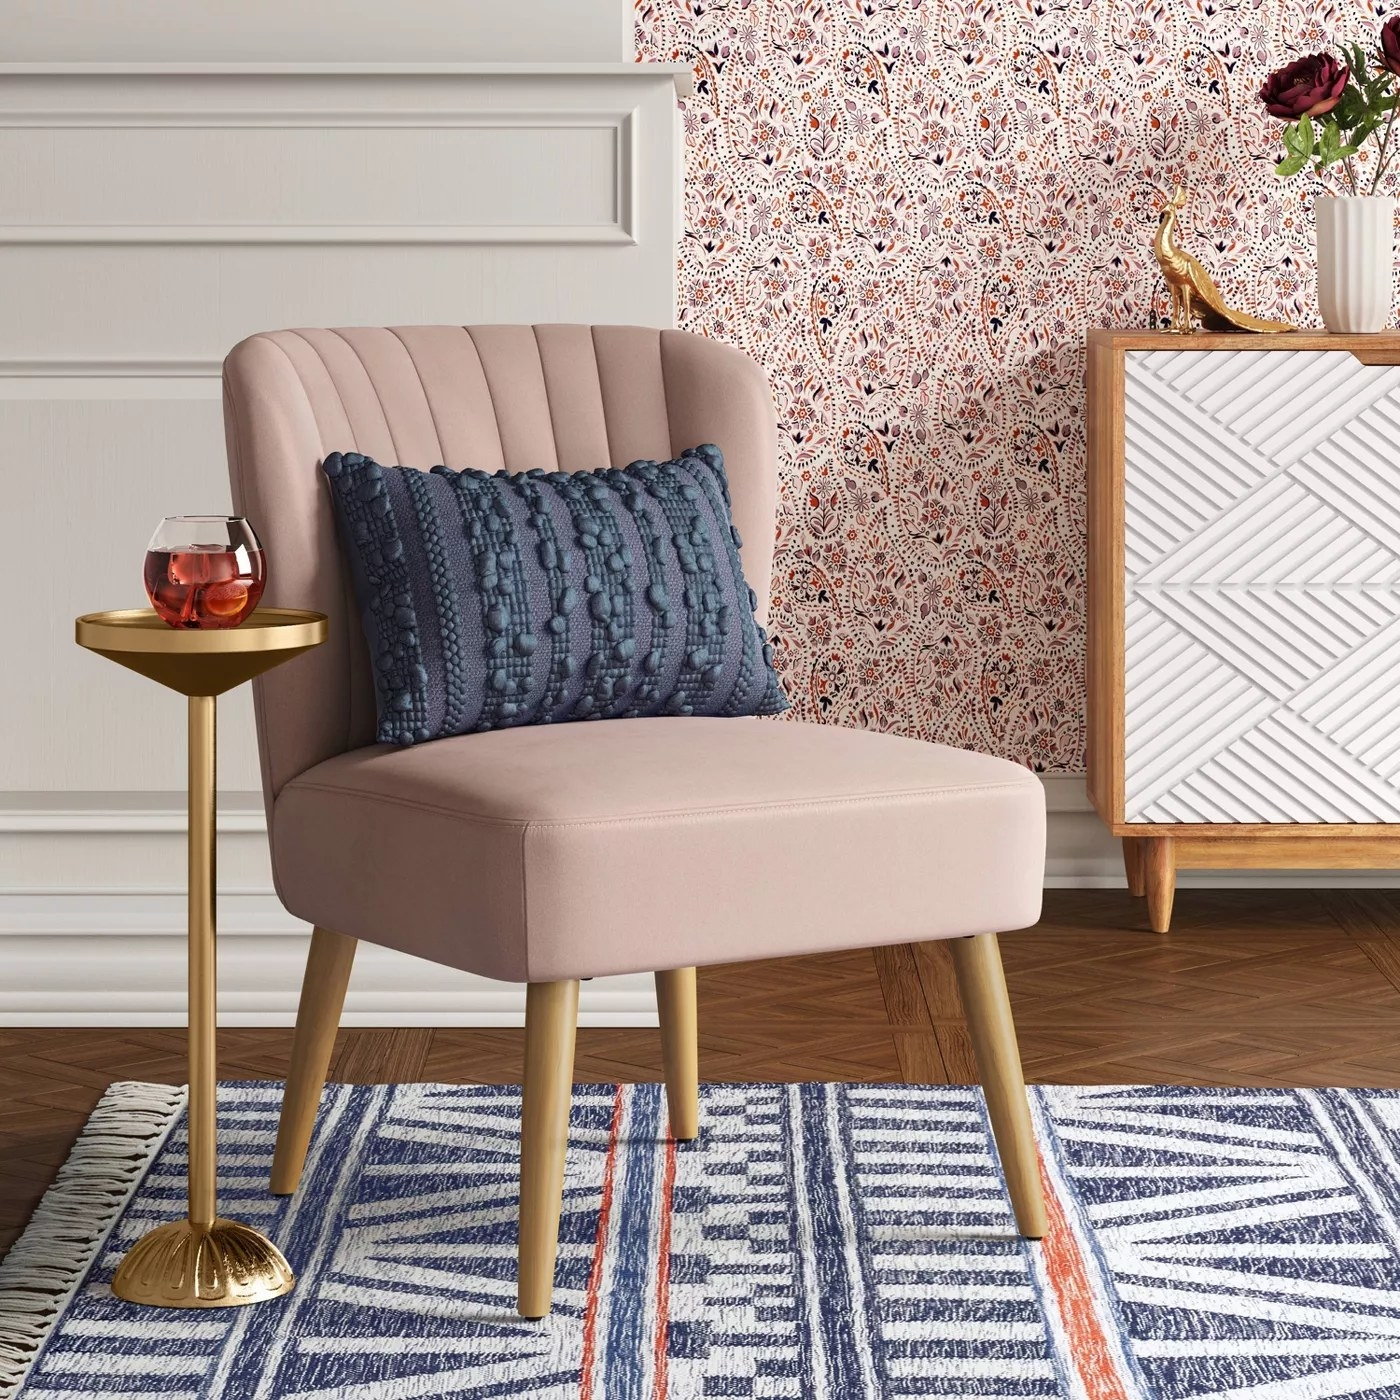 The chair in blush